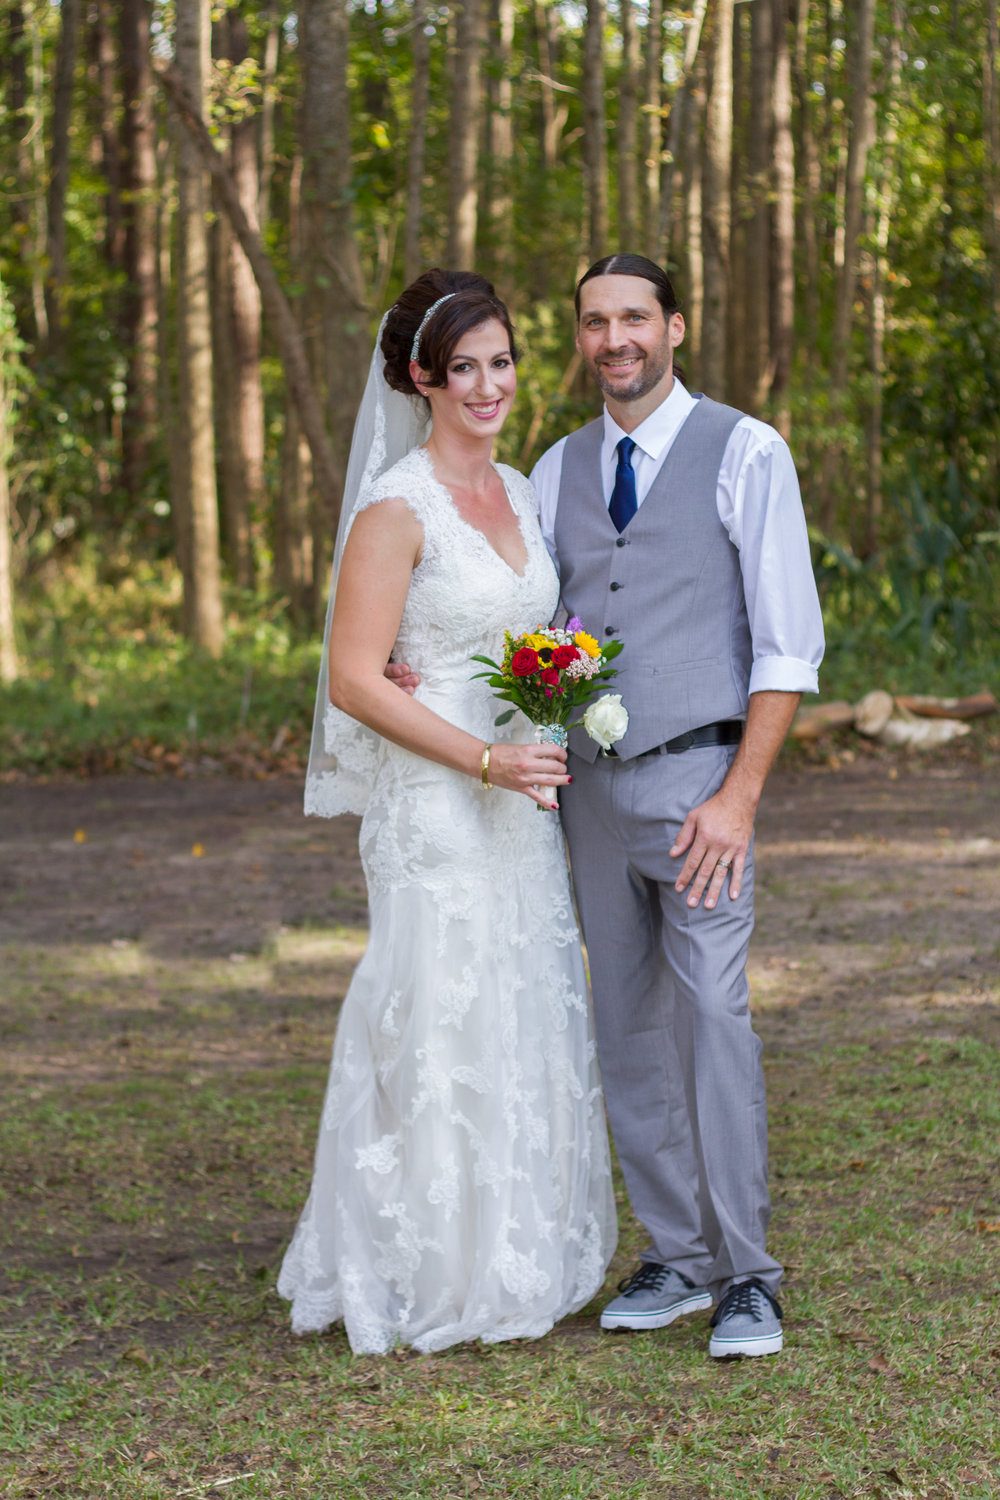 Jacqueline and Shawn Wedding (267 of 597).jpg